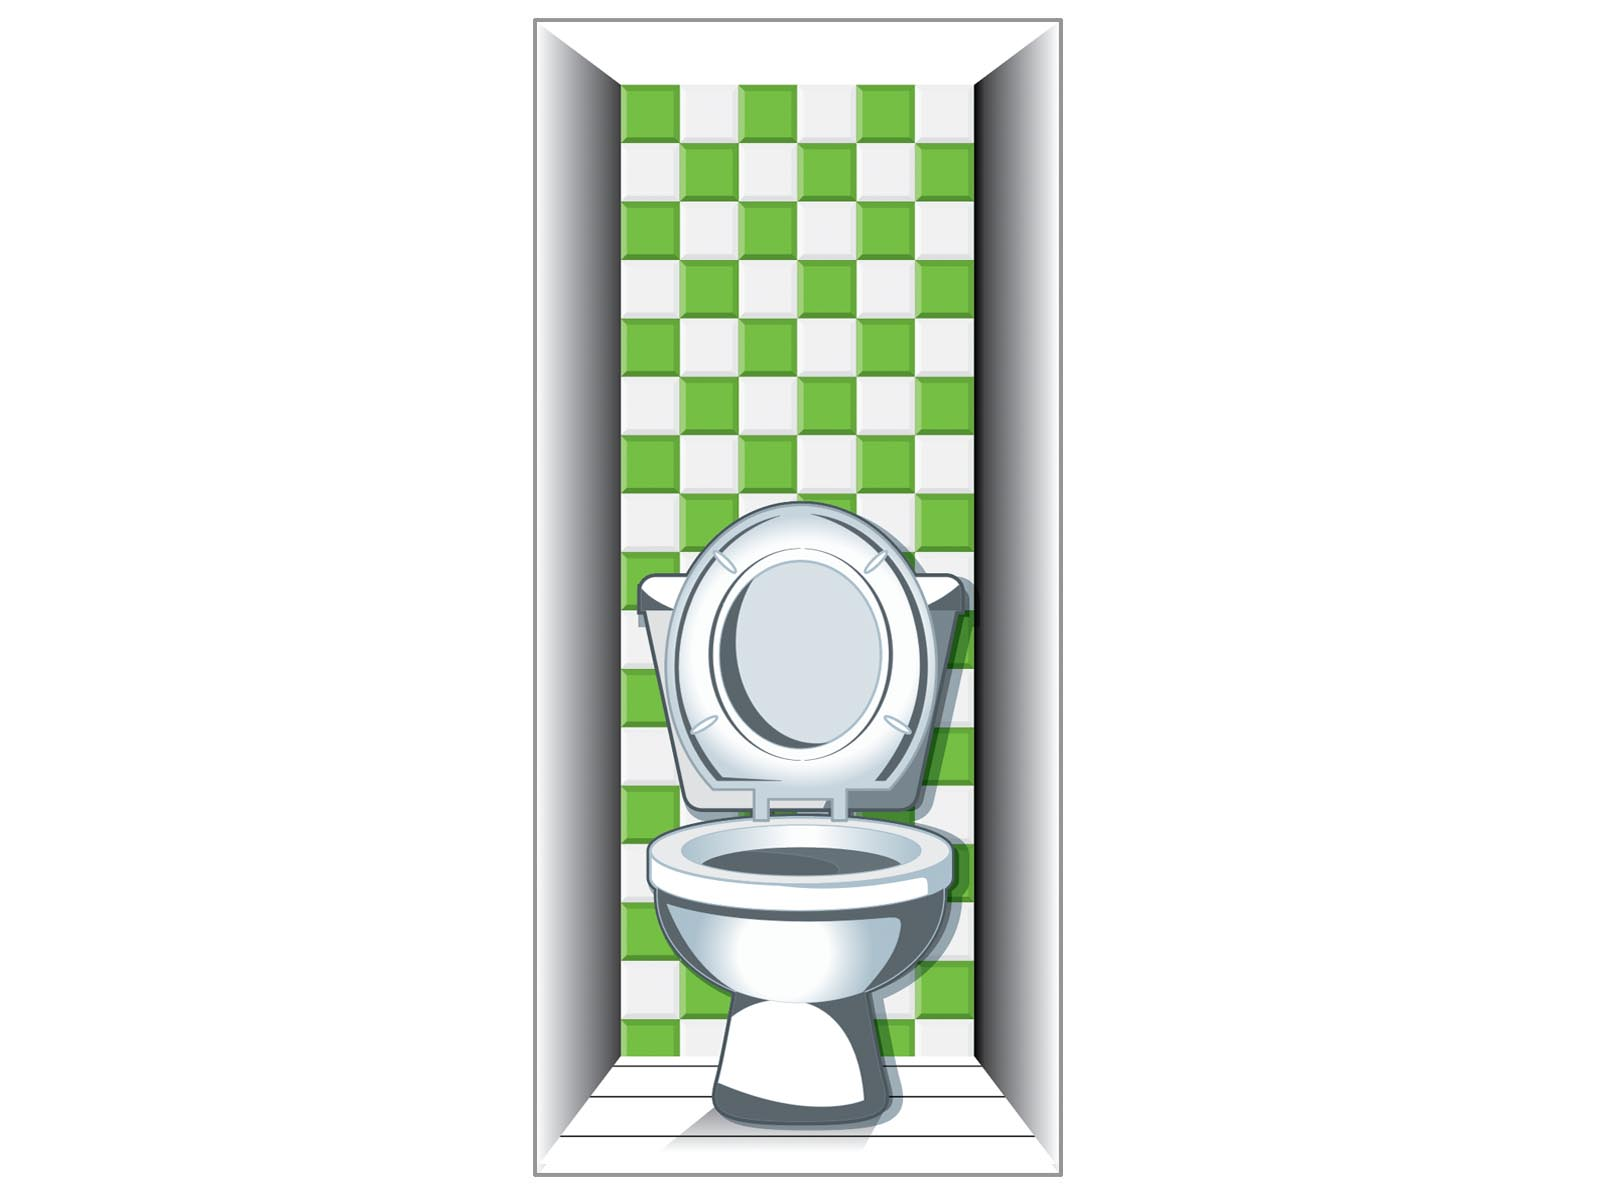 Amazing Toilet Dementia Door Wrap For Care Homes And Hospitals Onthecornerstone Fun Painted Chair Ideas Images Onthecornerstoneorg